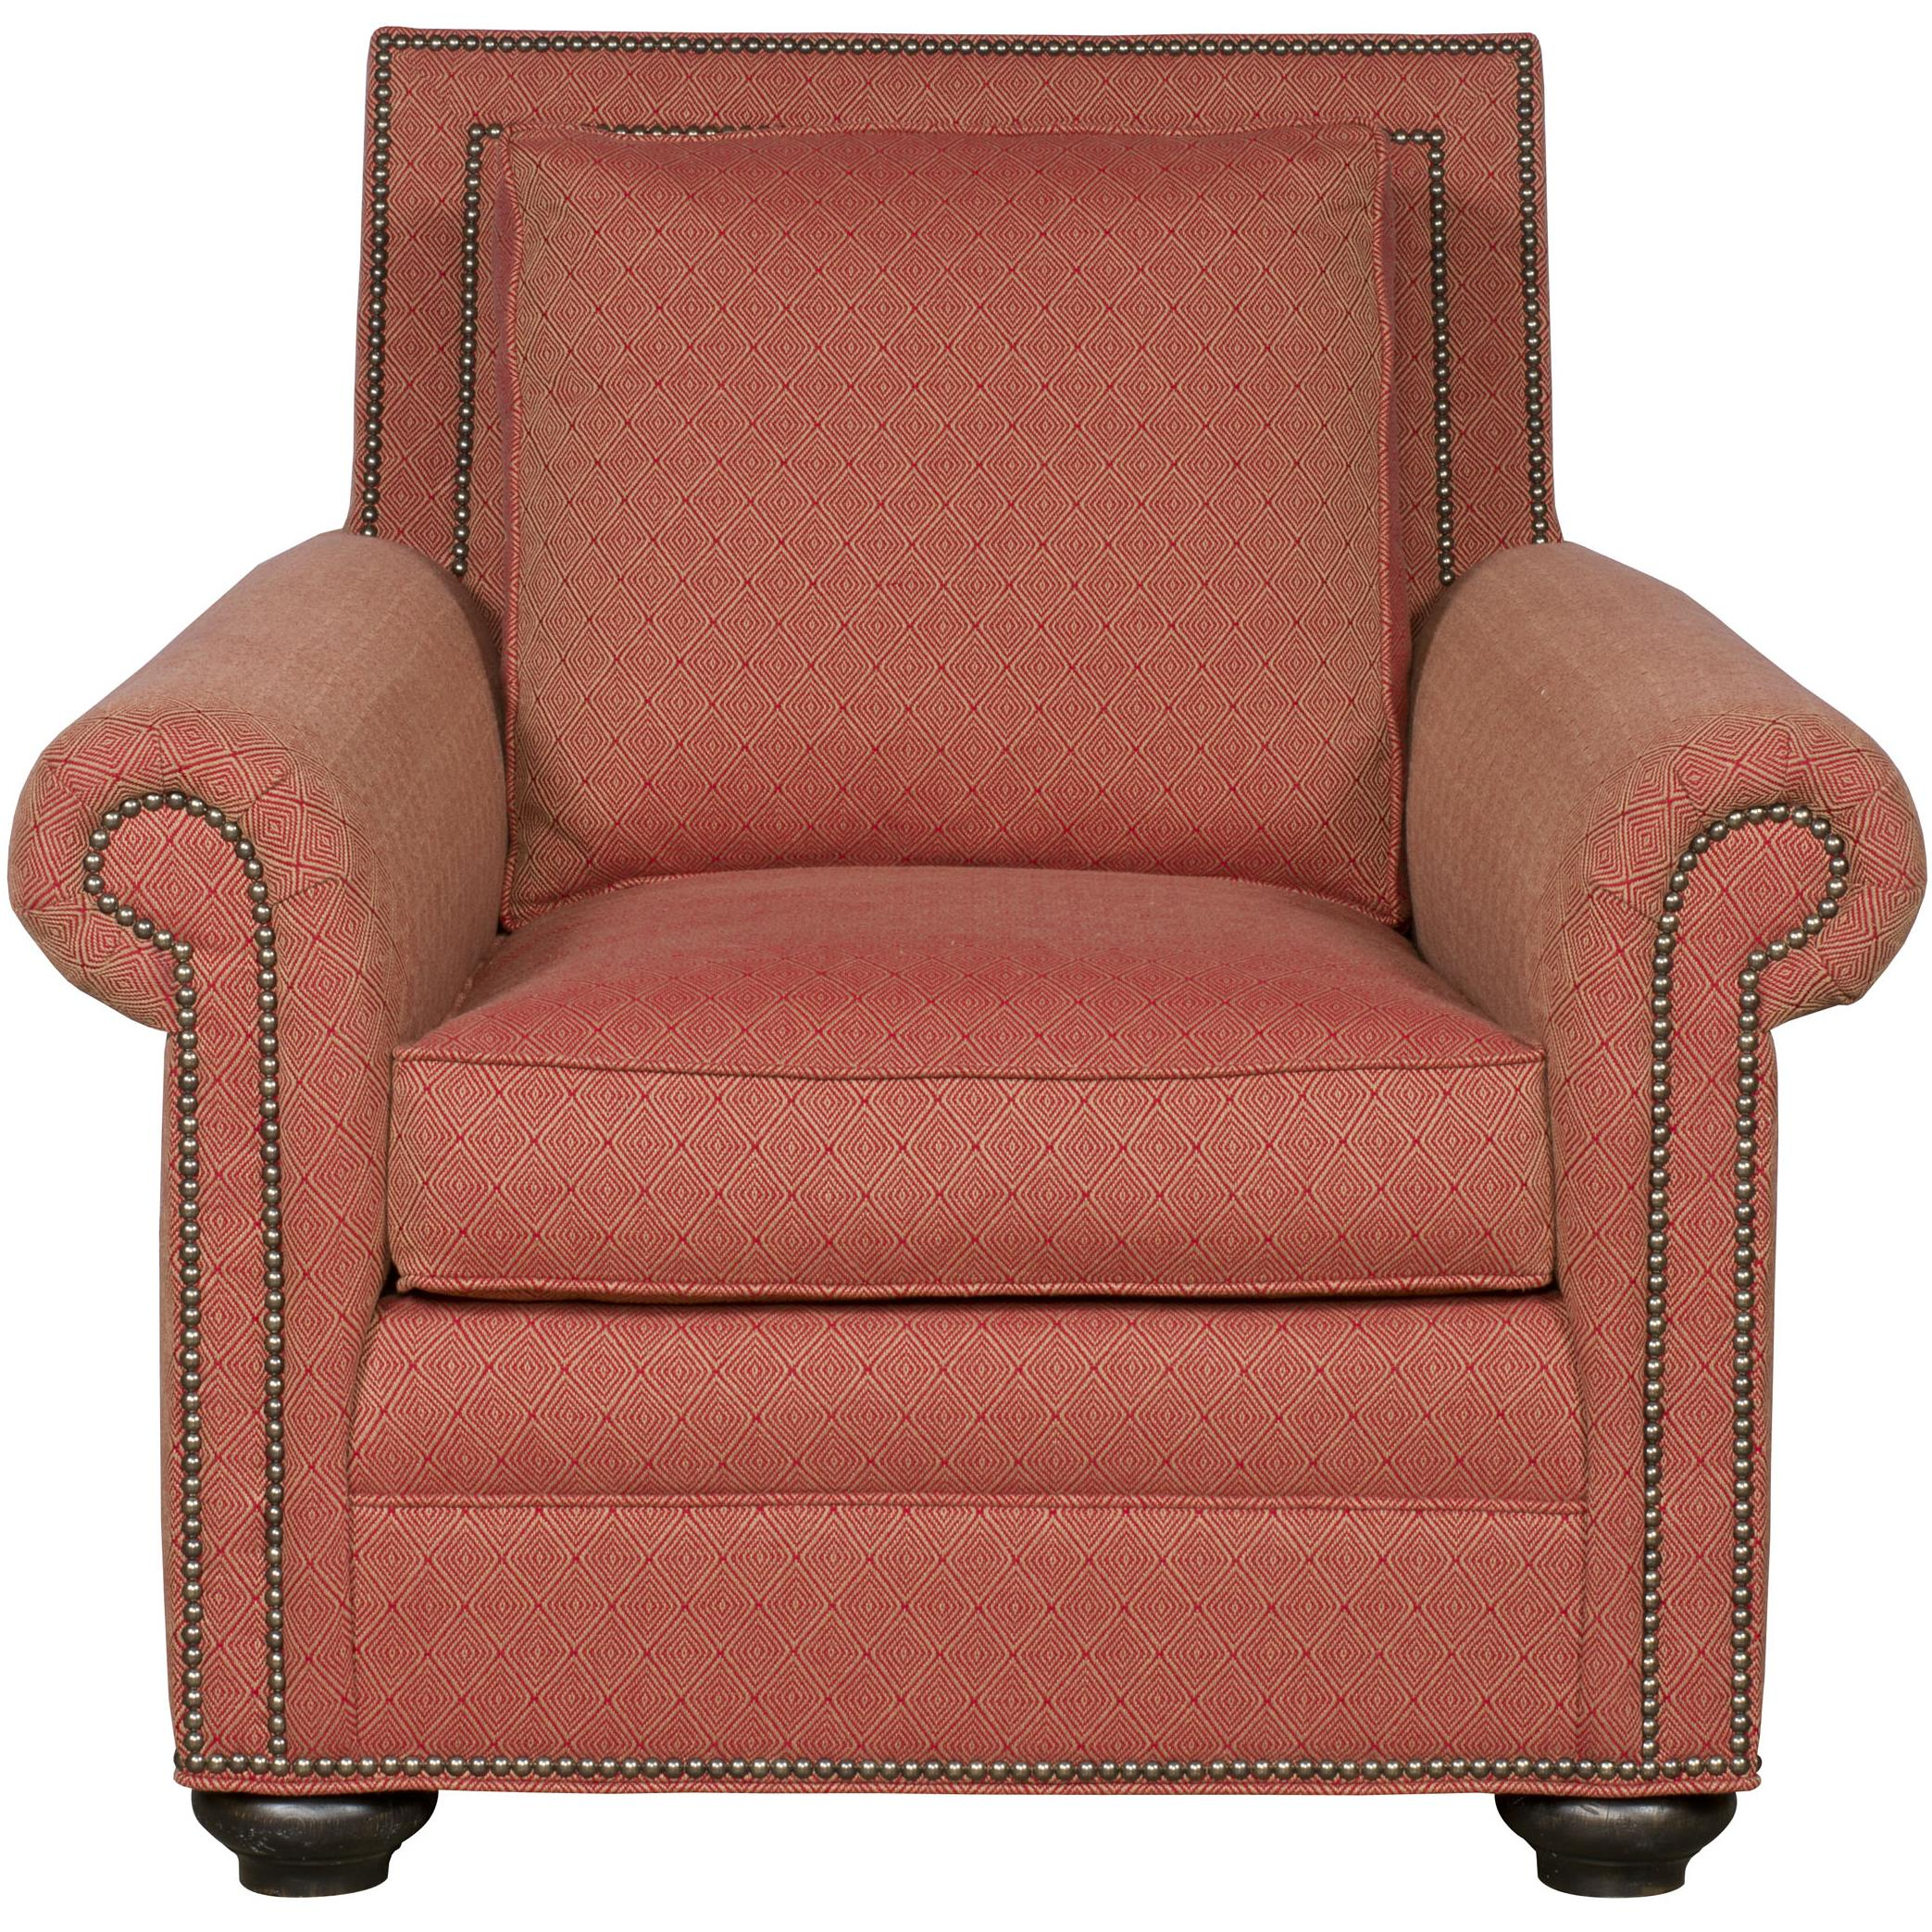 Simpson Traditional Chair by Vanguard Furniture at Baer's Furniture